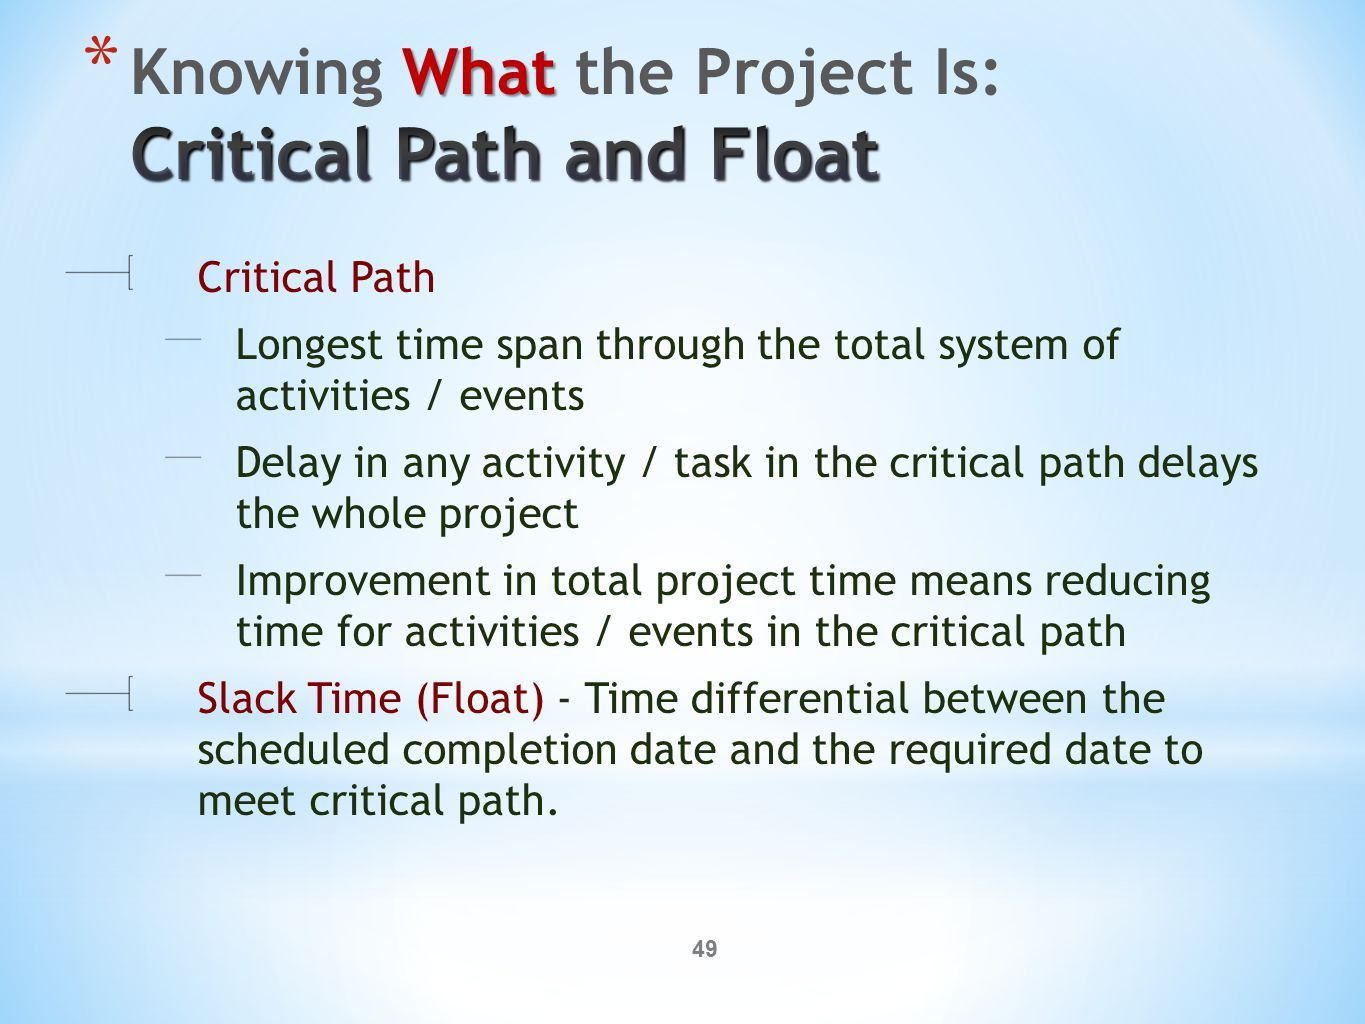 49 Critical Path Longest time span through the total system of activities / events Delay in any activity / task in the critical path delays the whole